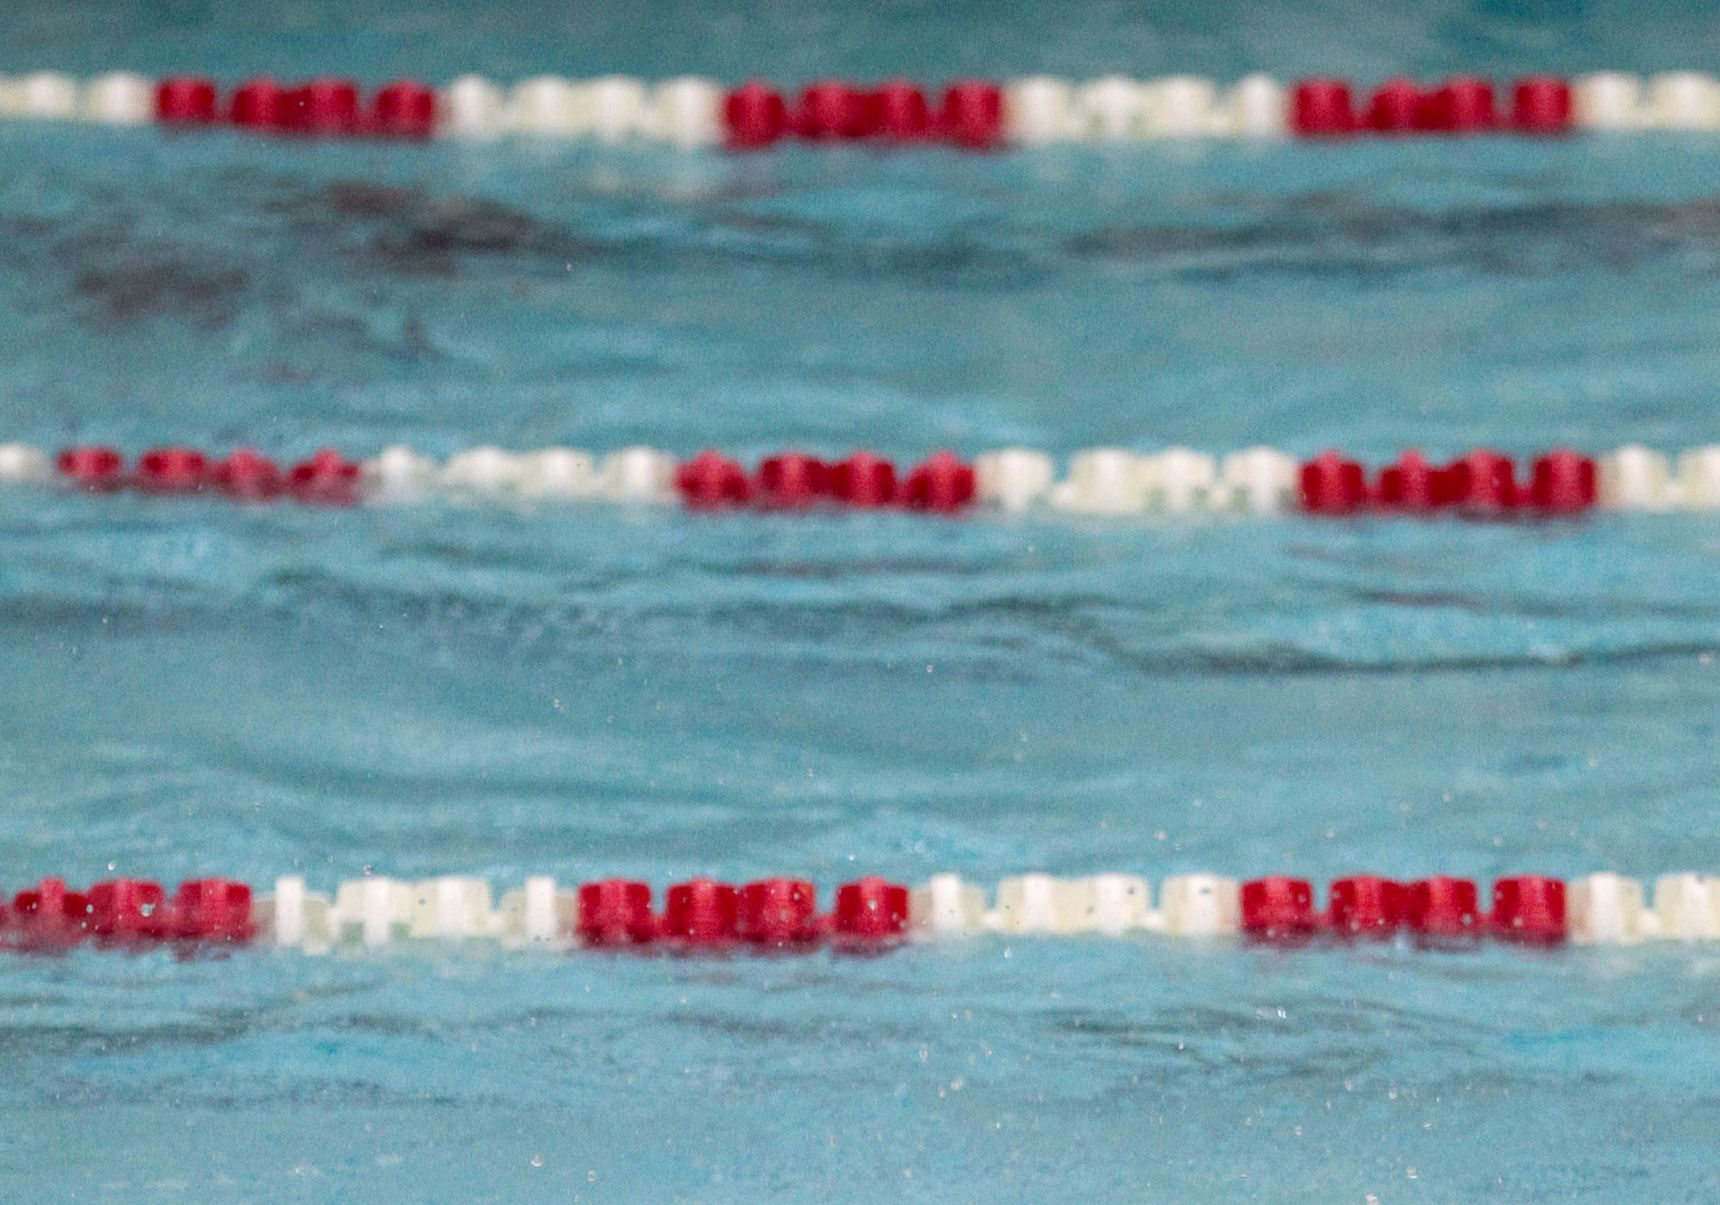 Teen Swimmer Disqualified For Fit Of School Alaska Teen